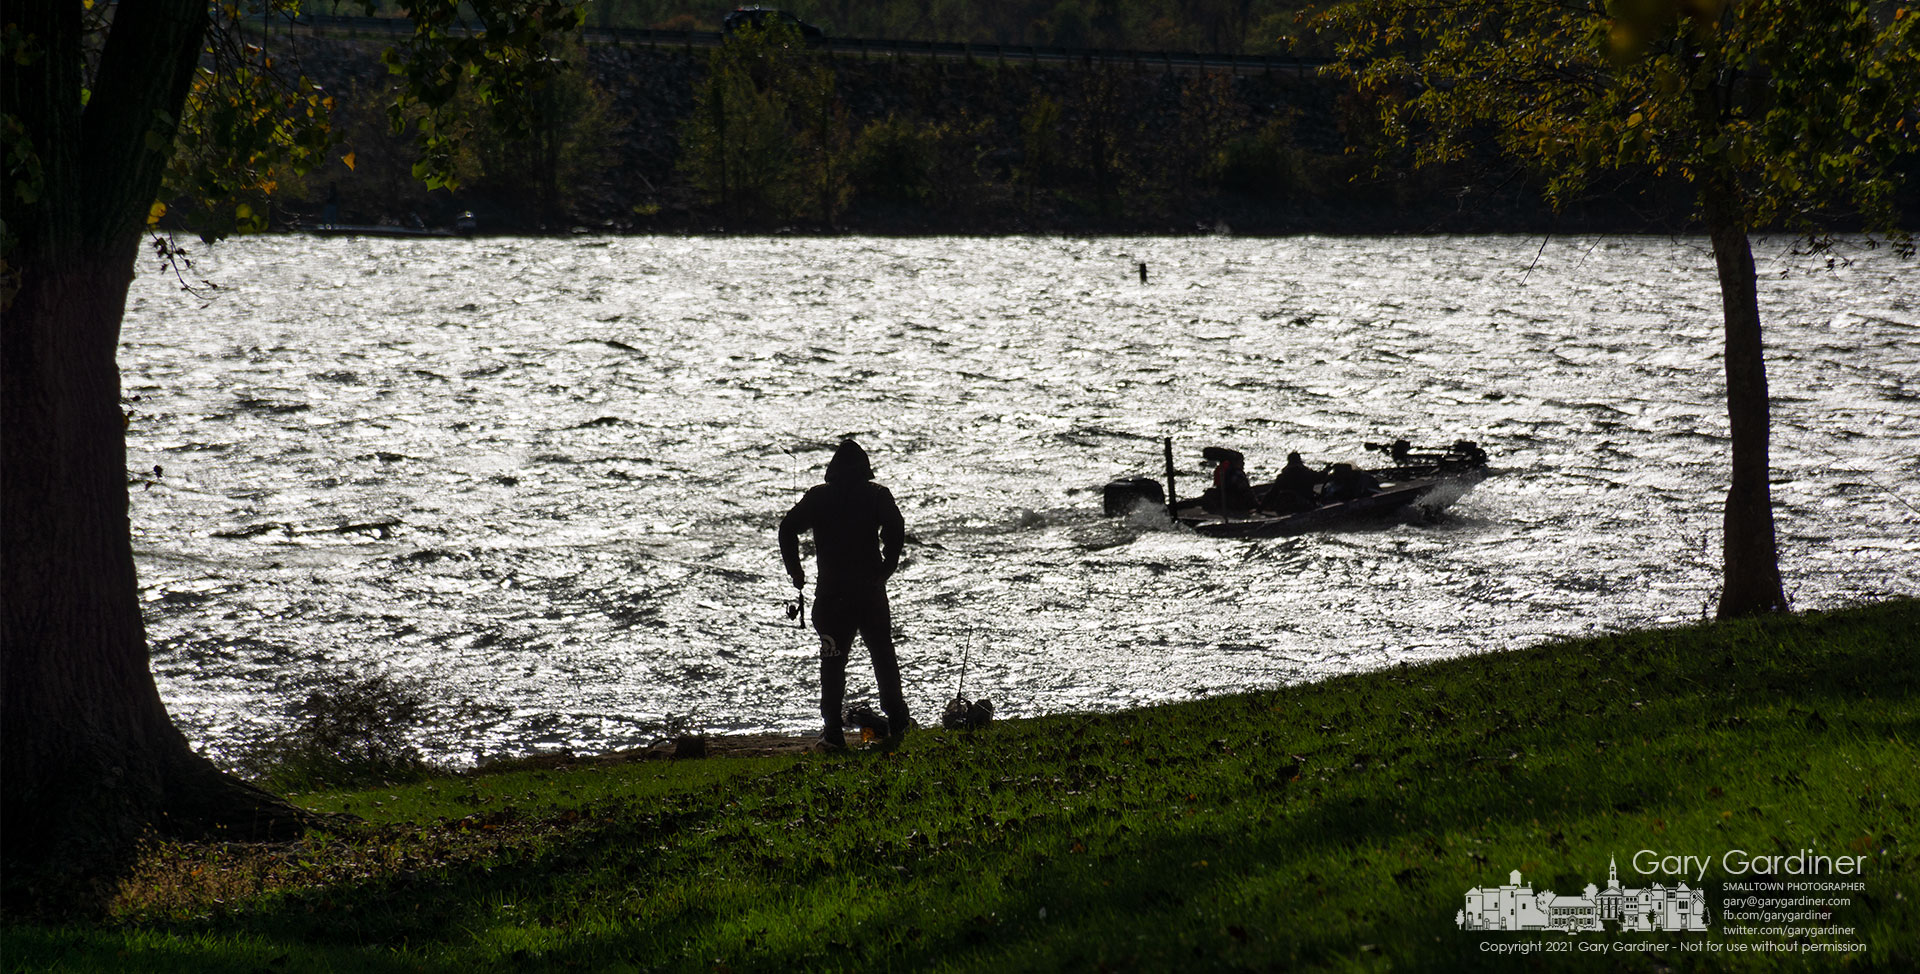 A shorebound fisherman watches as a waterborne compatriot passes by for a better fishing hole at Alum Creek State Park Lake. My Final Photo for Oct. 17, 2021.